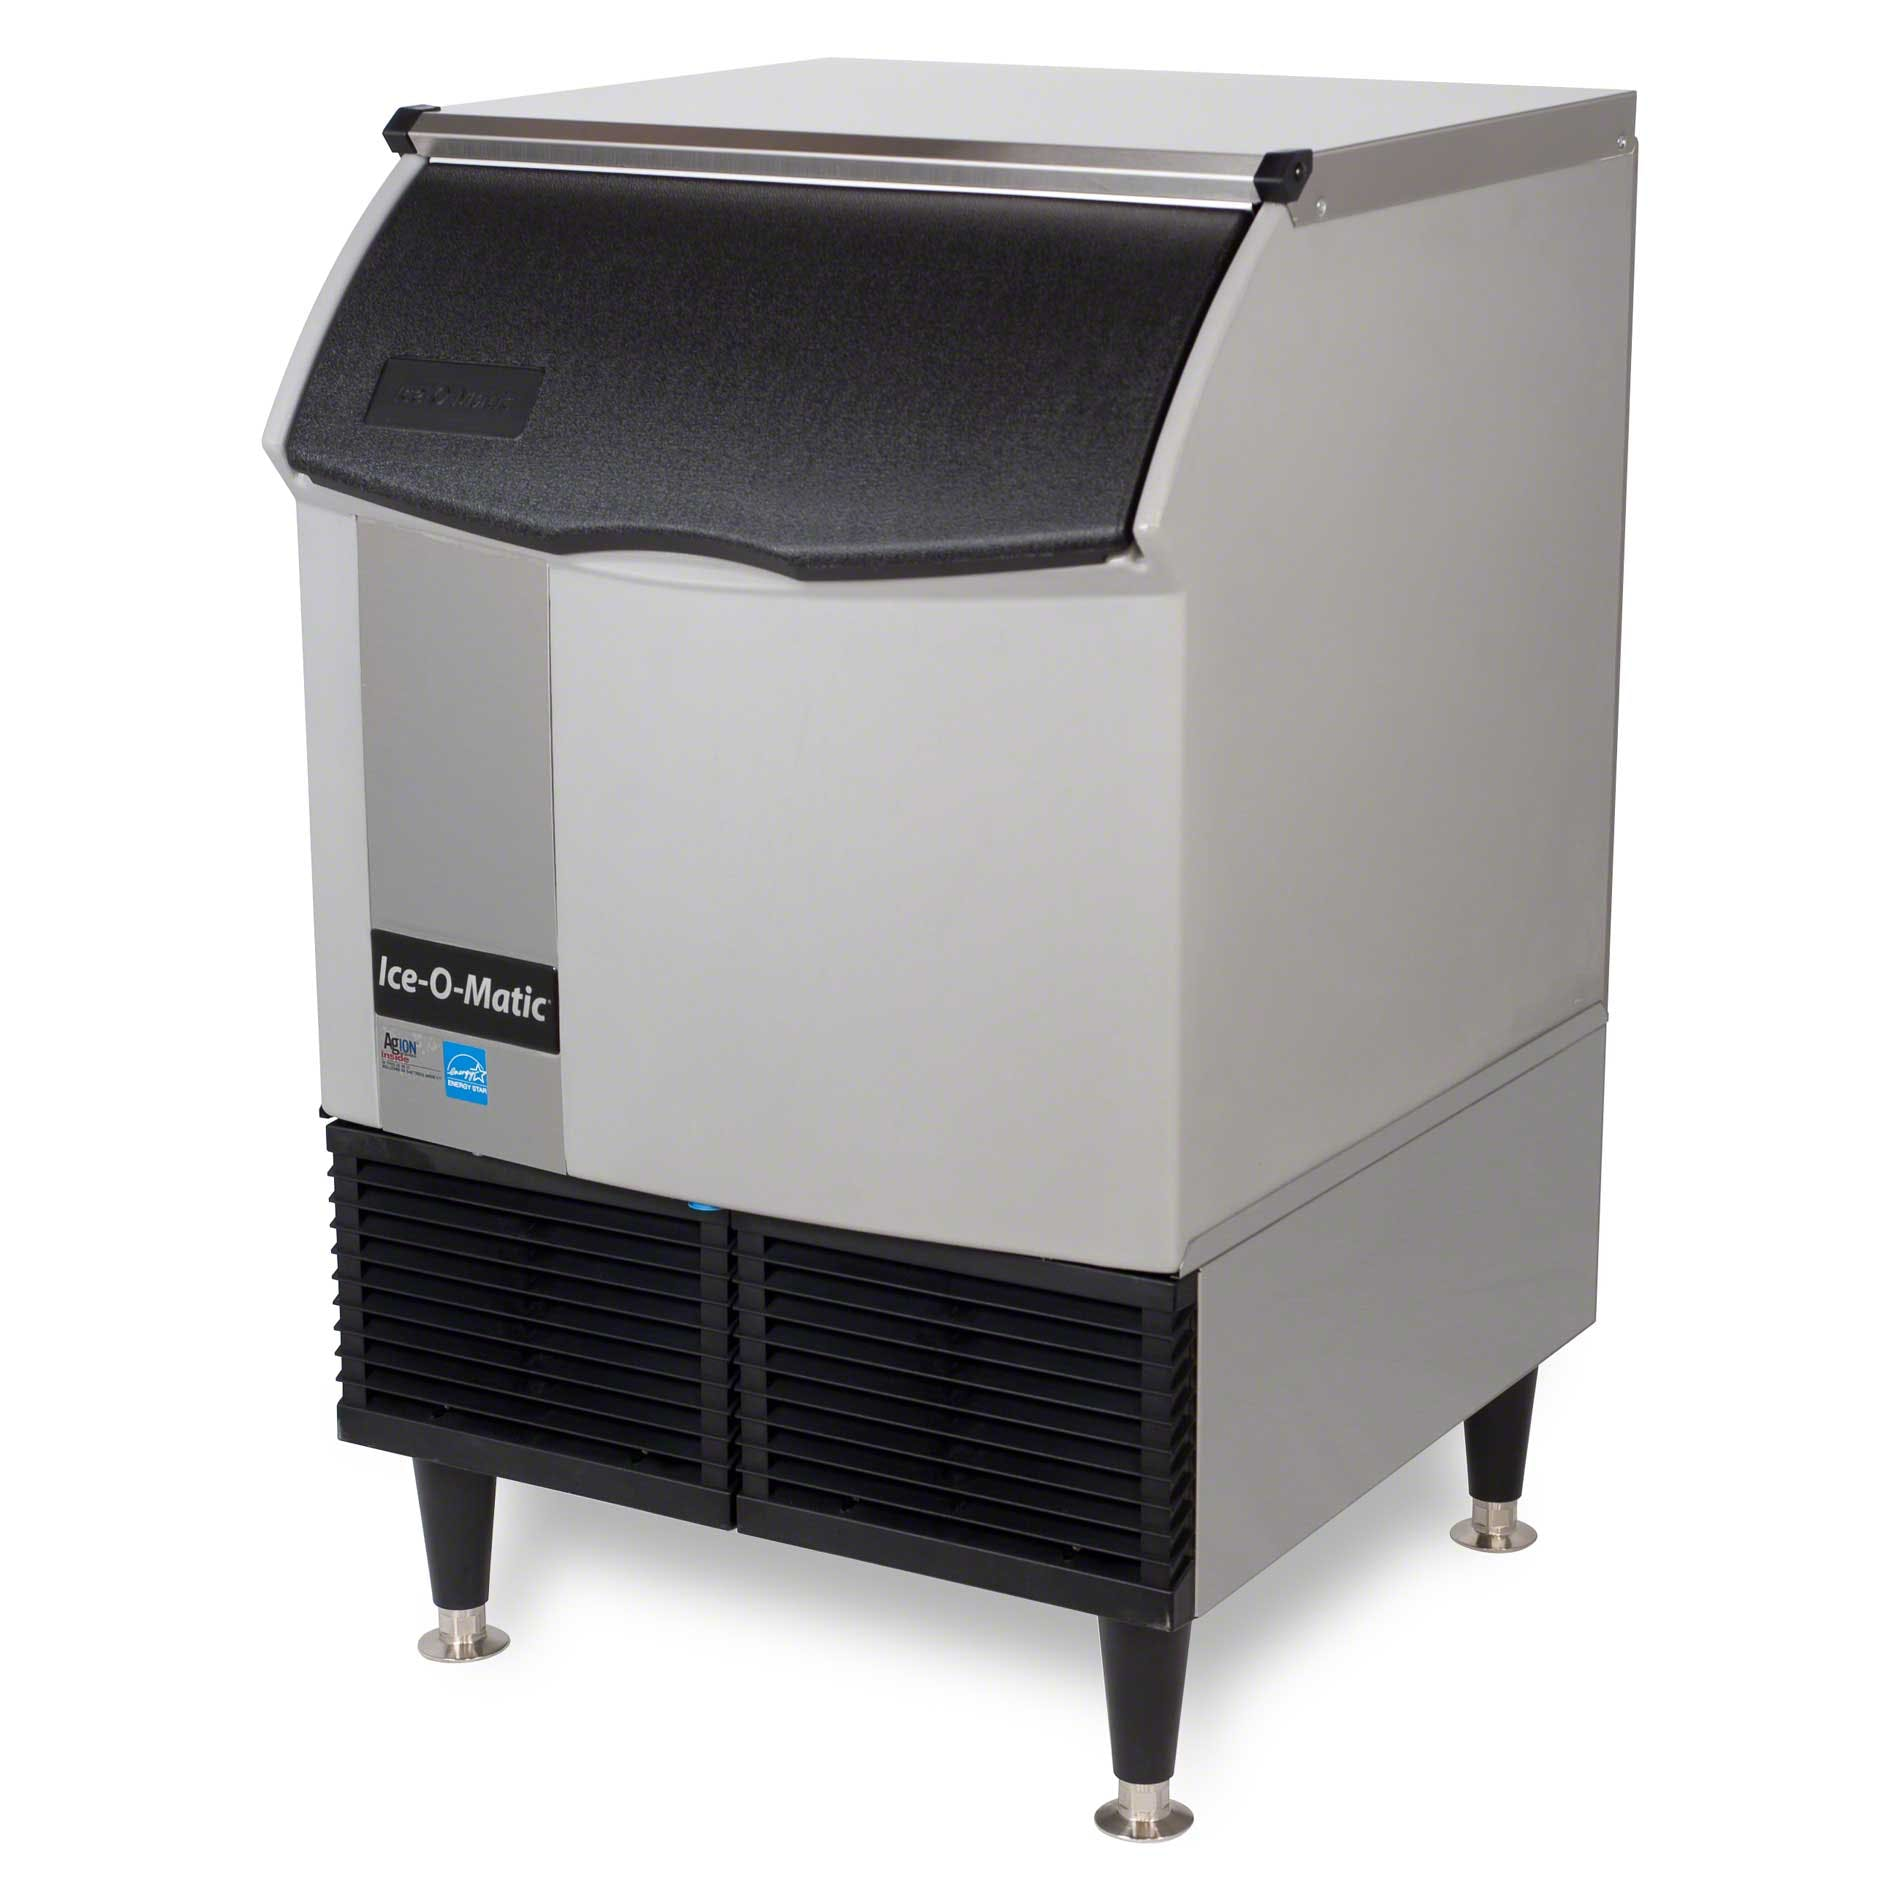 Ice-O-Matic - ICEU220HW 251 lb Self-Contained Half Cube Ice Machine Ice machine sold by Food Service Warehouse